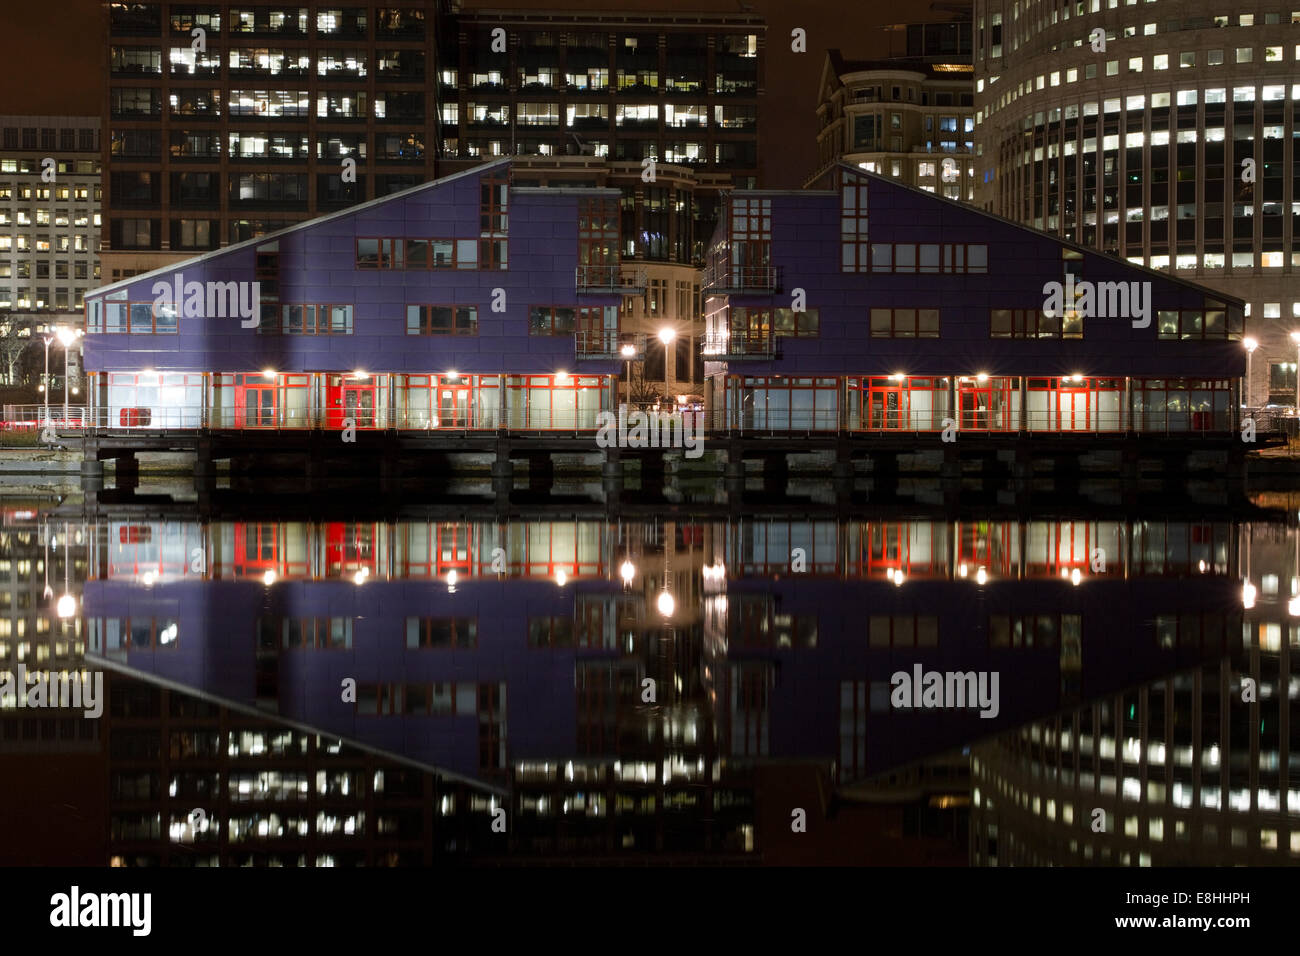 Reflections in water of the various buildings in London's Canary Wharf Financial District. Stock Photo